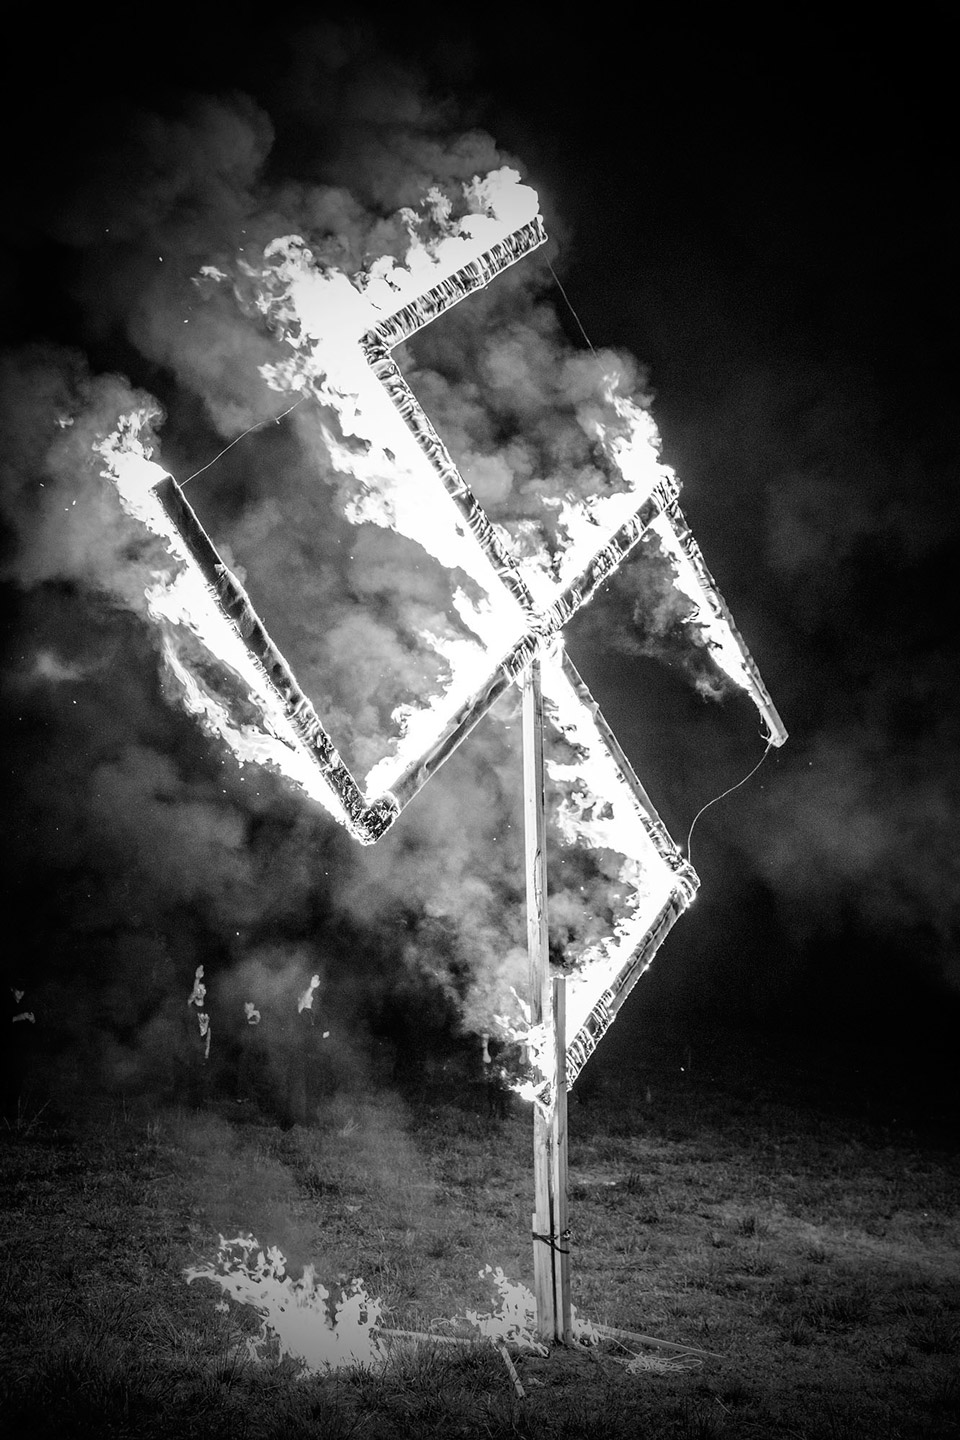 National Socialist Movement Lighting Ceremony, Georgia, 2018